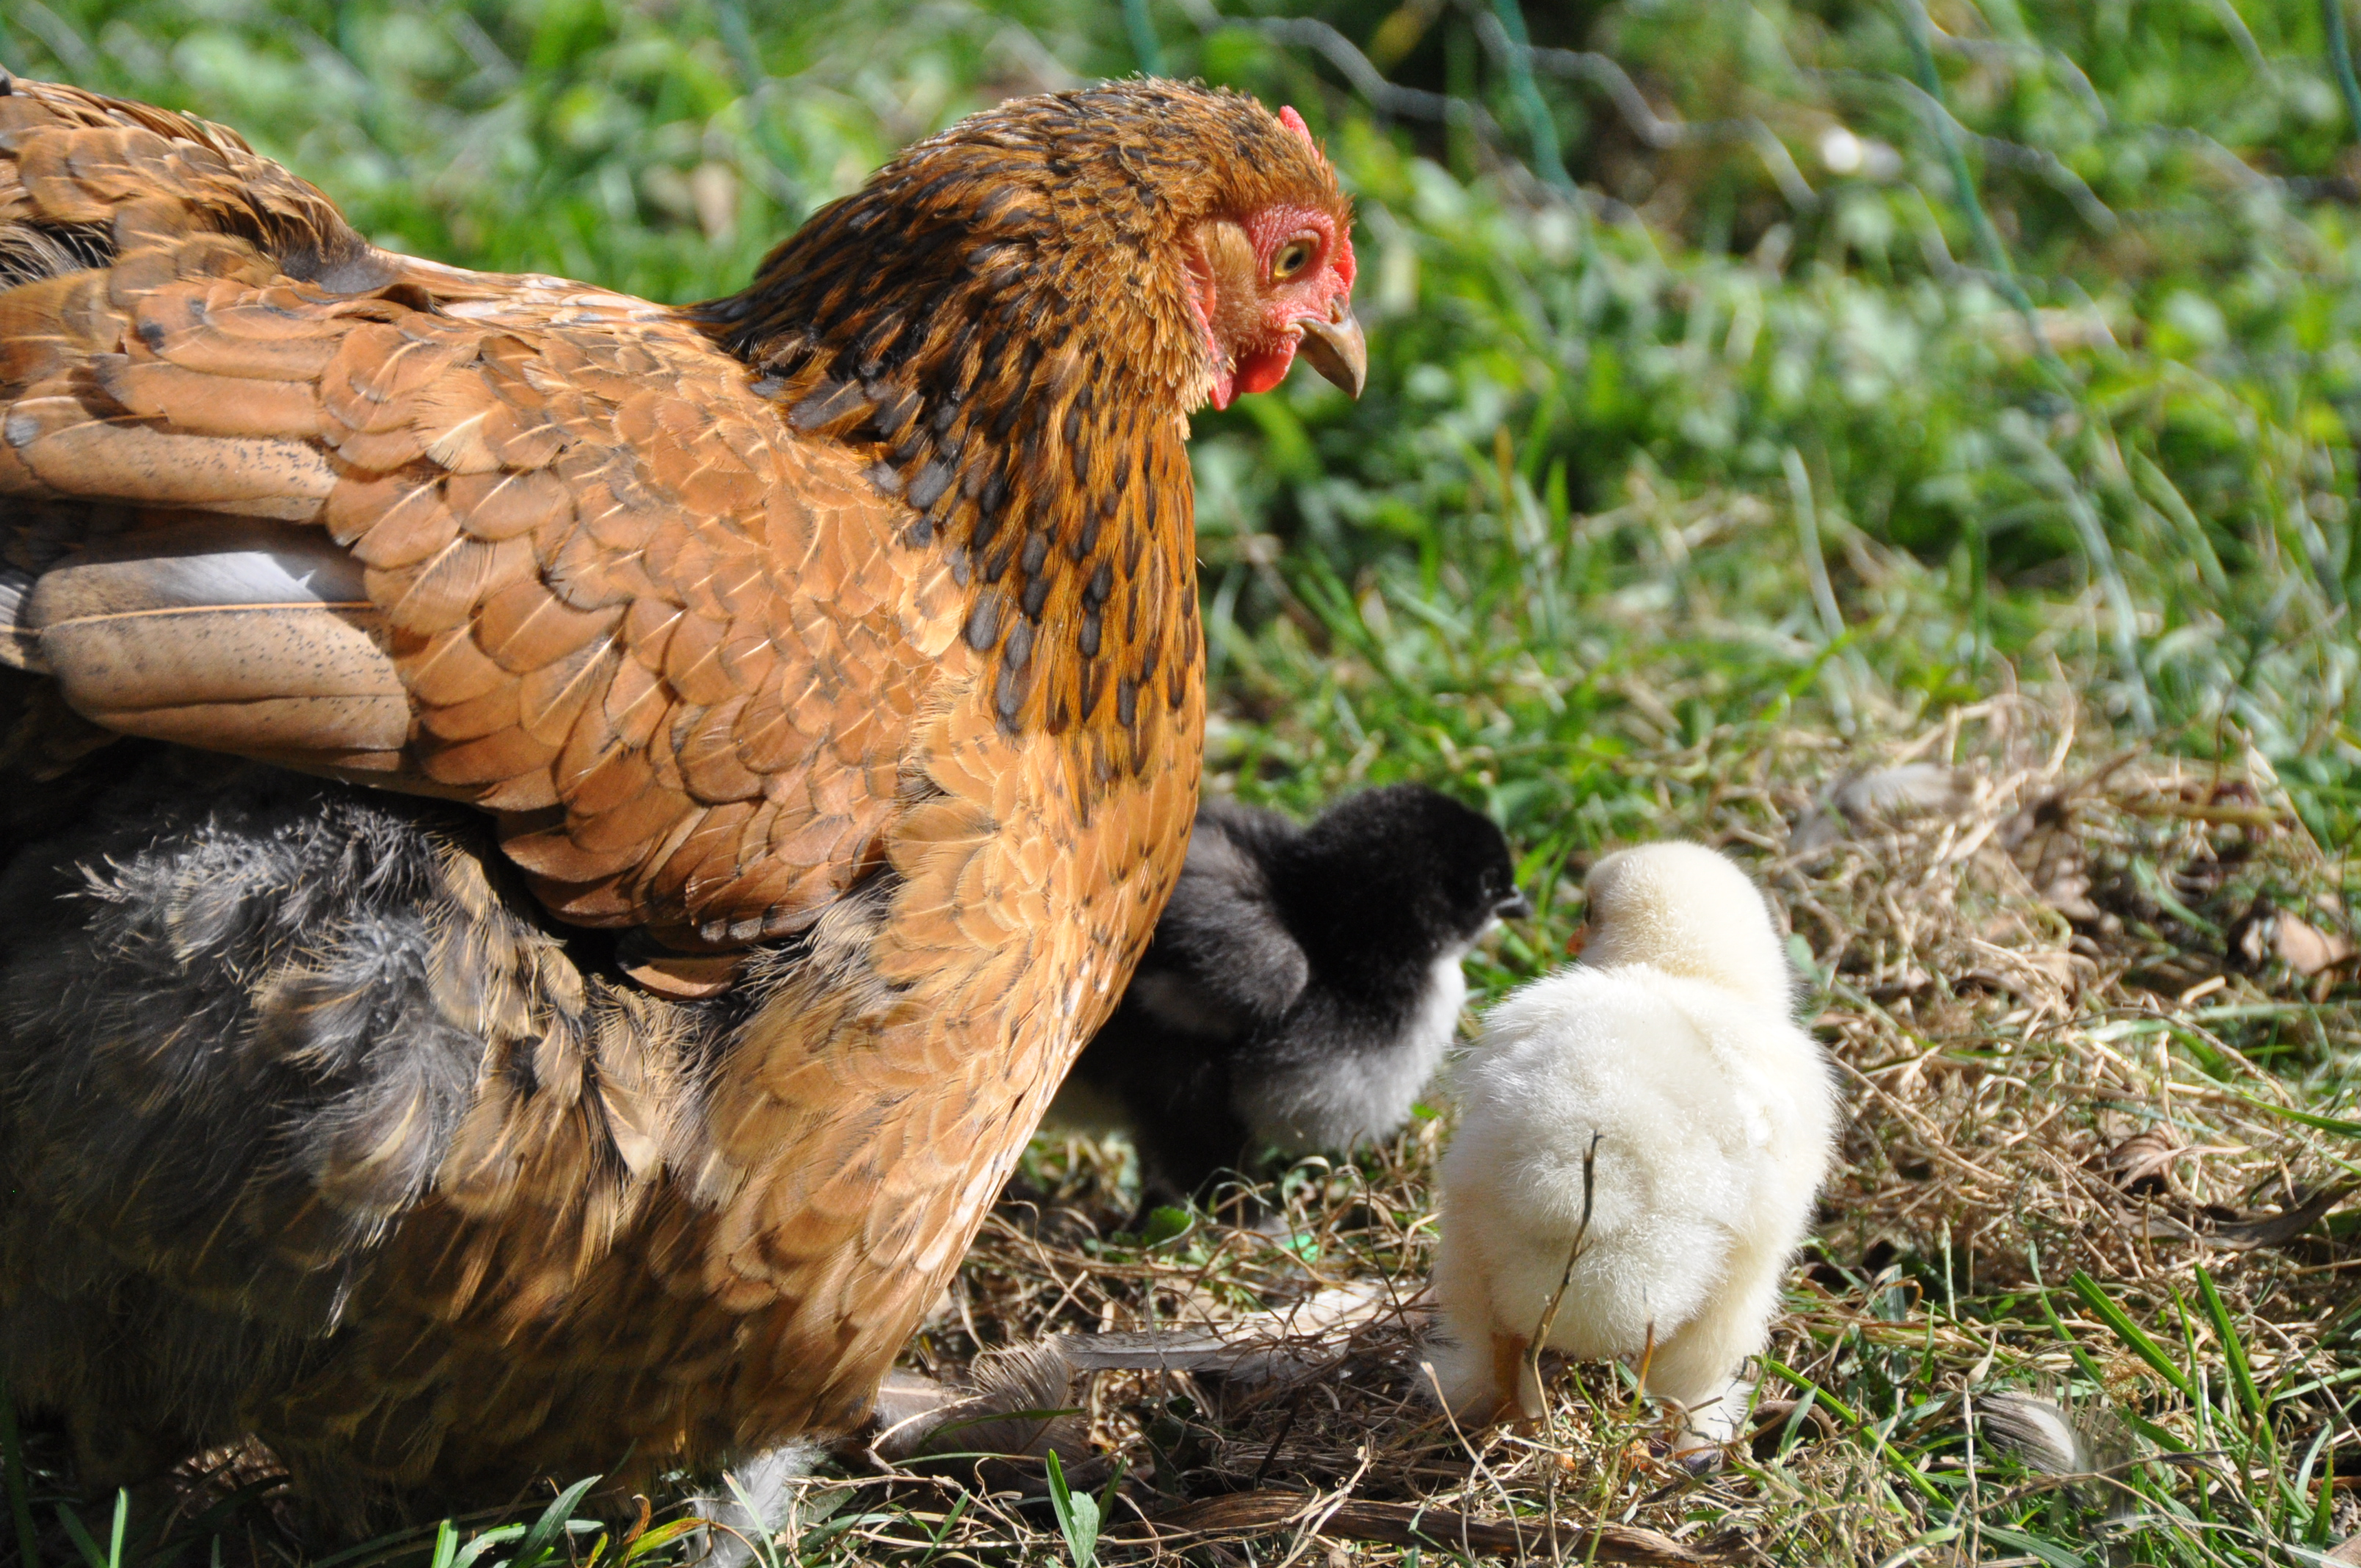 Baby chicks and mother